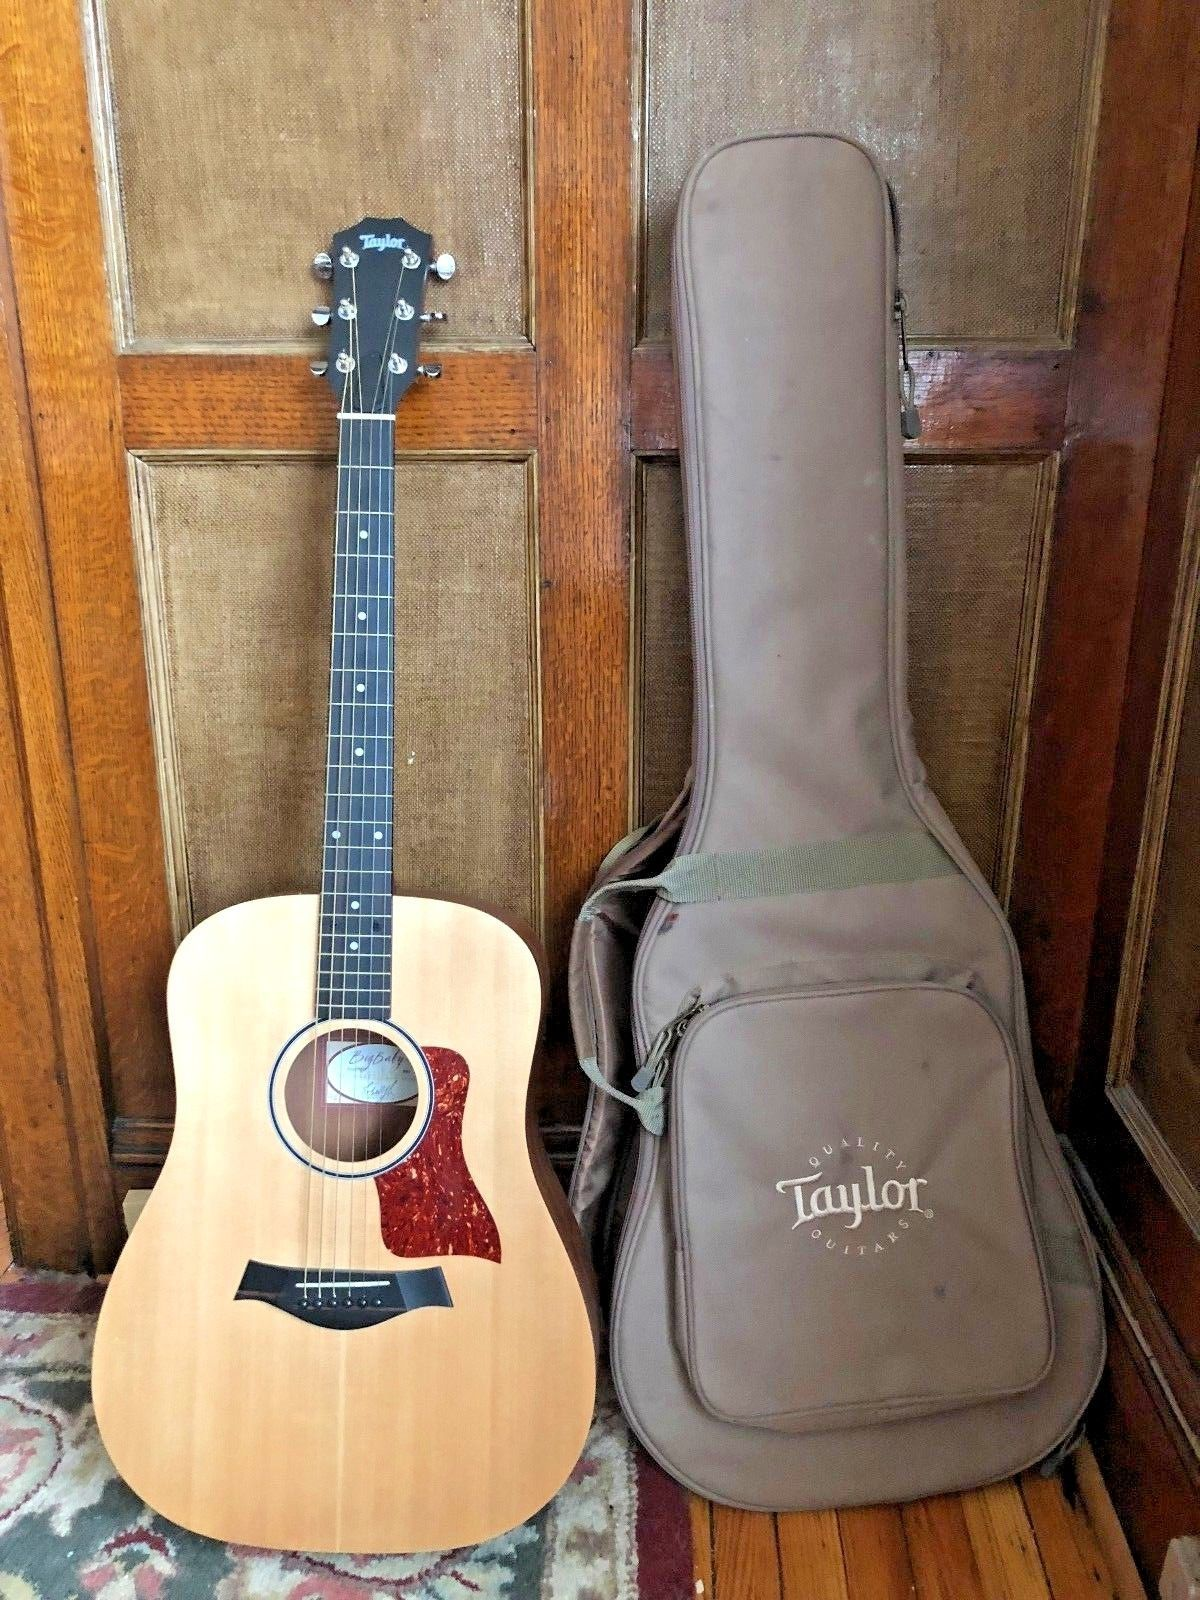 Guitar New Taylor Baby Acoustic Guitar W Gig Bag Please Retweet Acoustic Guitar For Sale Guitar Acoustic Guitar Photography